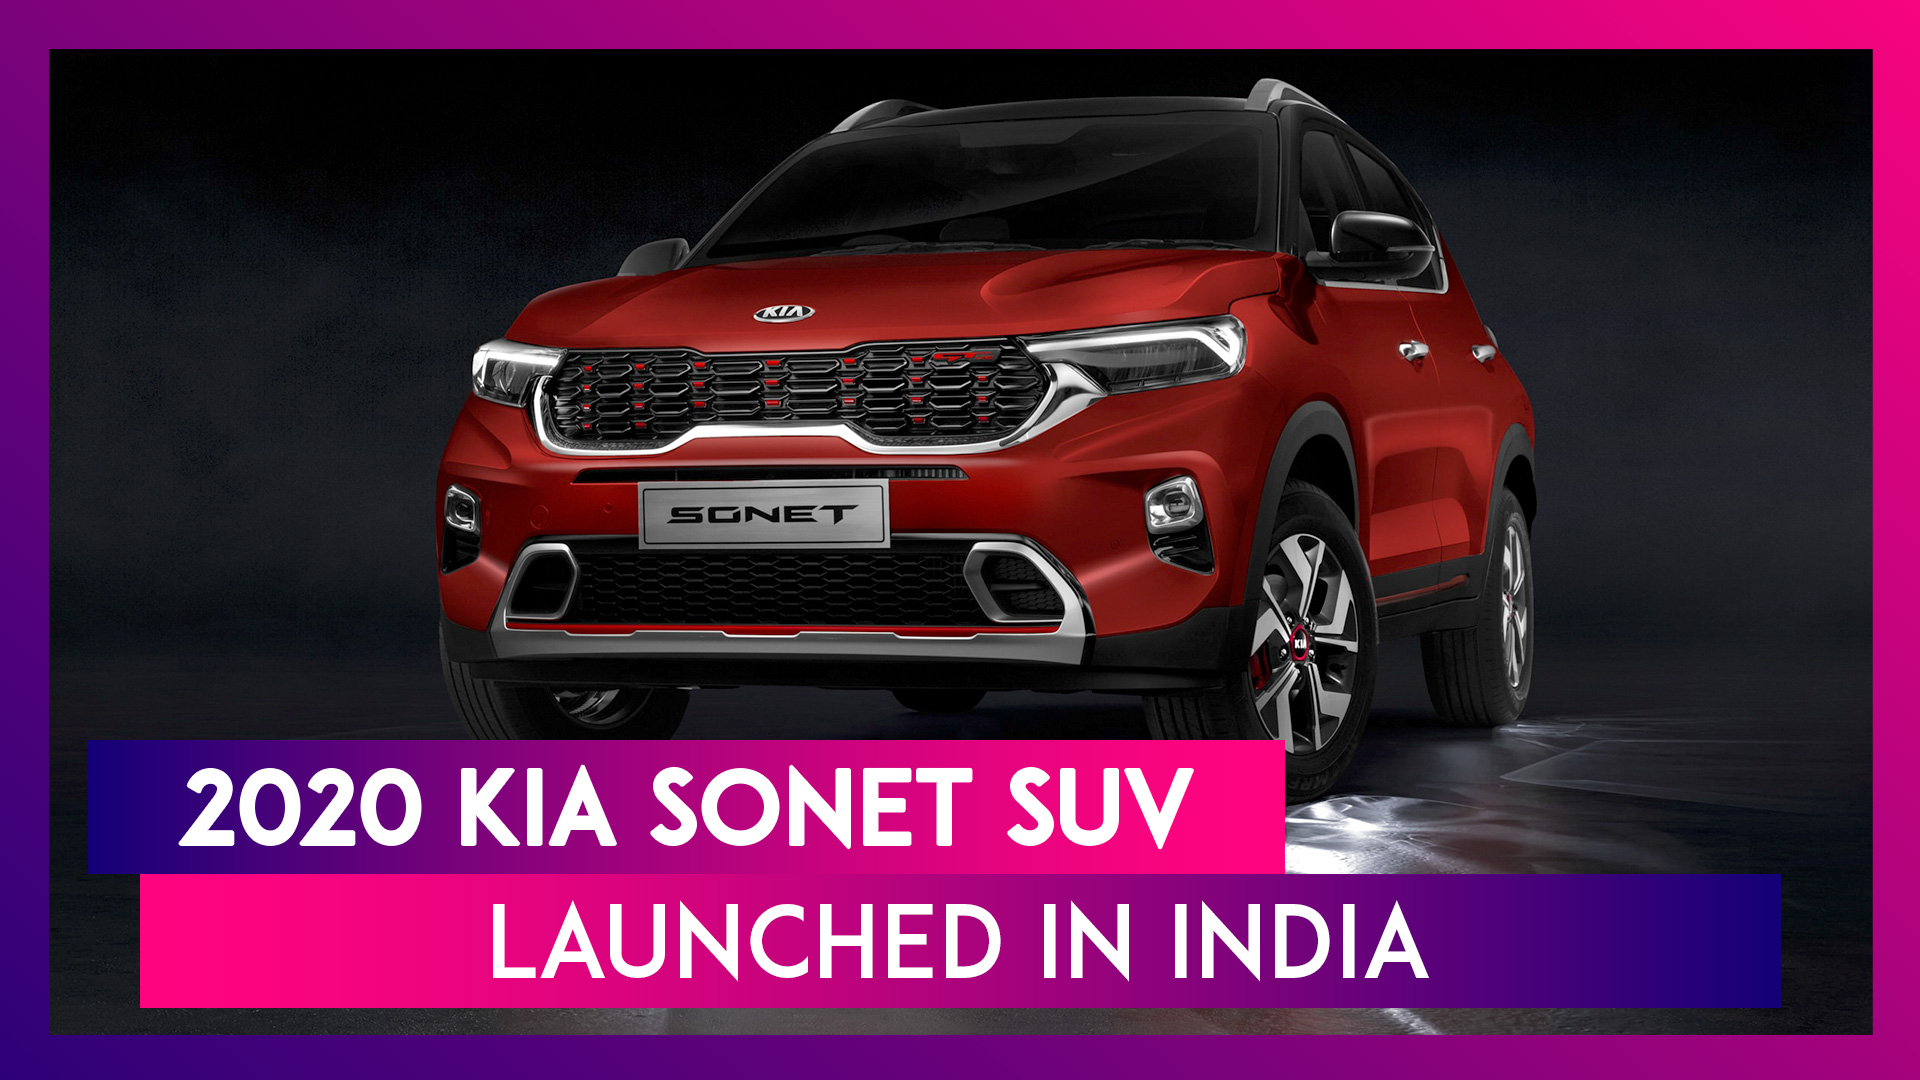 Kia Sonet SUV Launched in India at Rs 6.71 Lakh; Prices, Features, Variants & Specifications